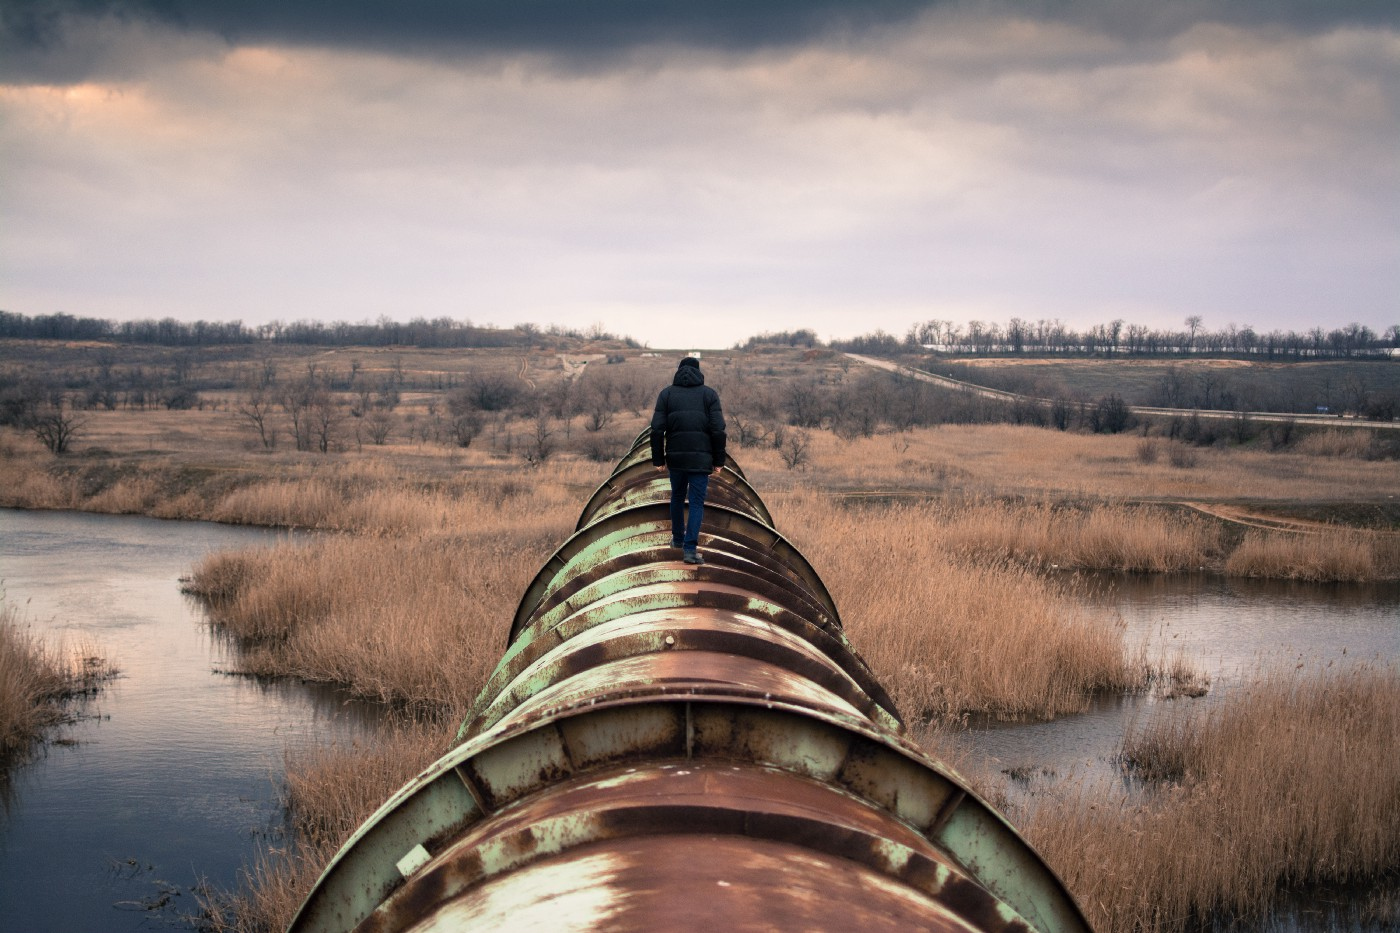 person walking along an above-ground pipeline through a marsh